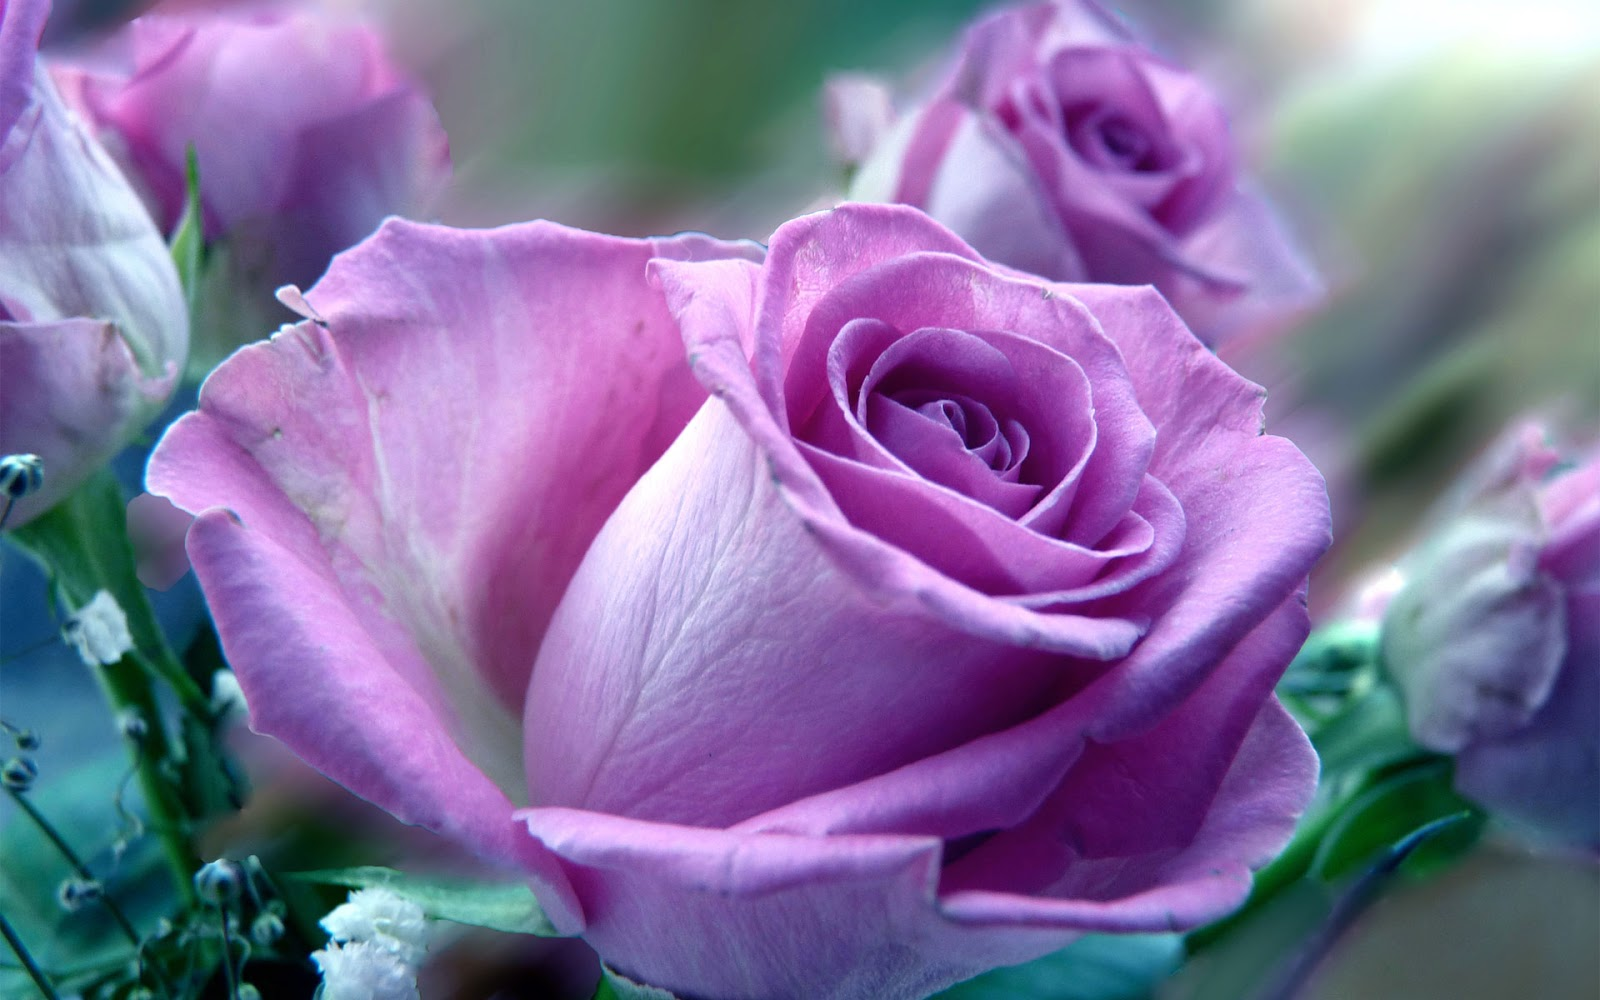 Beautiful Roses HD Desktop Wallpapers in 1080p ~ Super HD Wallpaperss